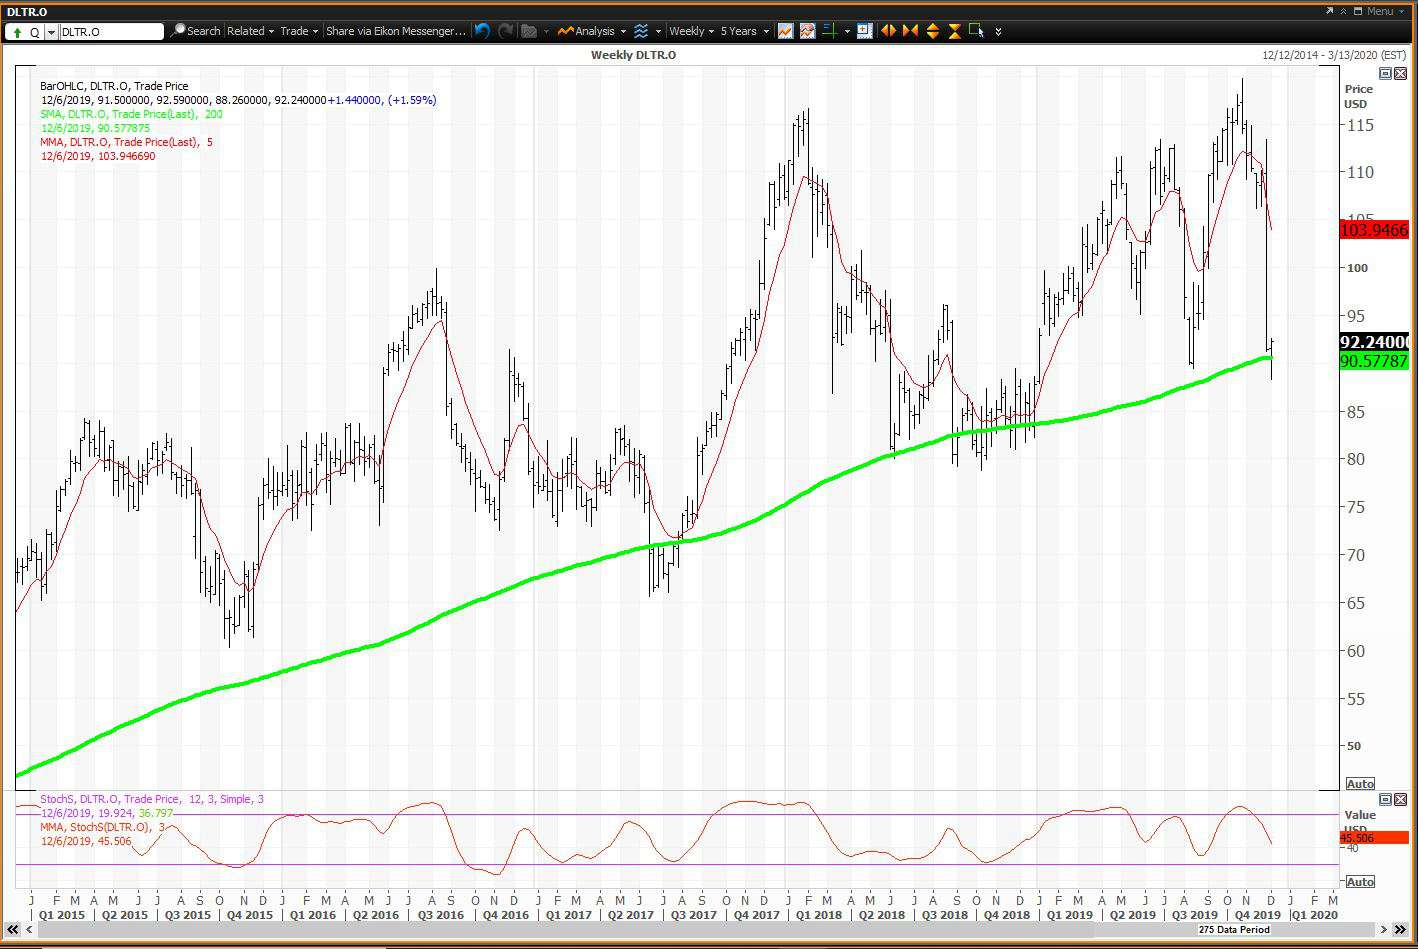 Weekly chart showing the share price performance of Dollar Tree, Inc. (DLTR)